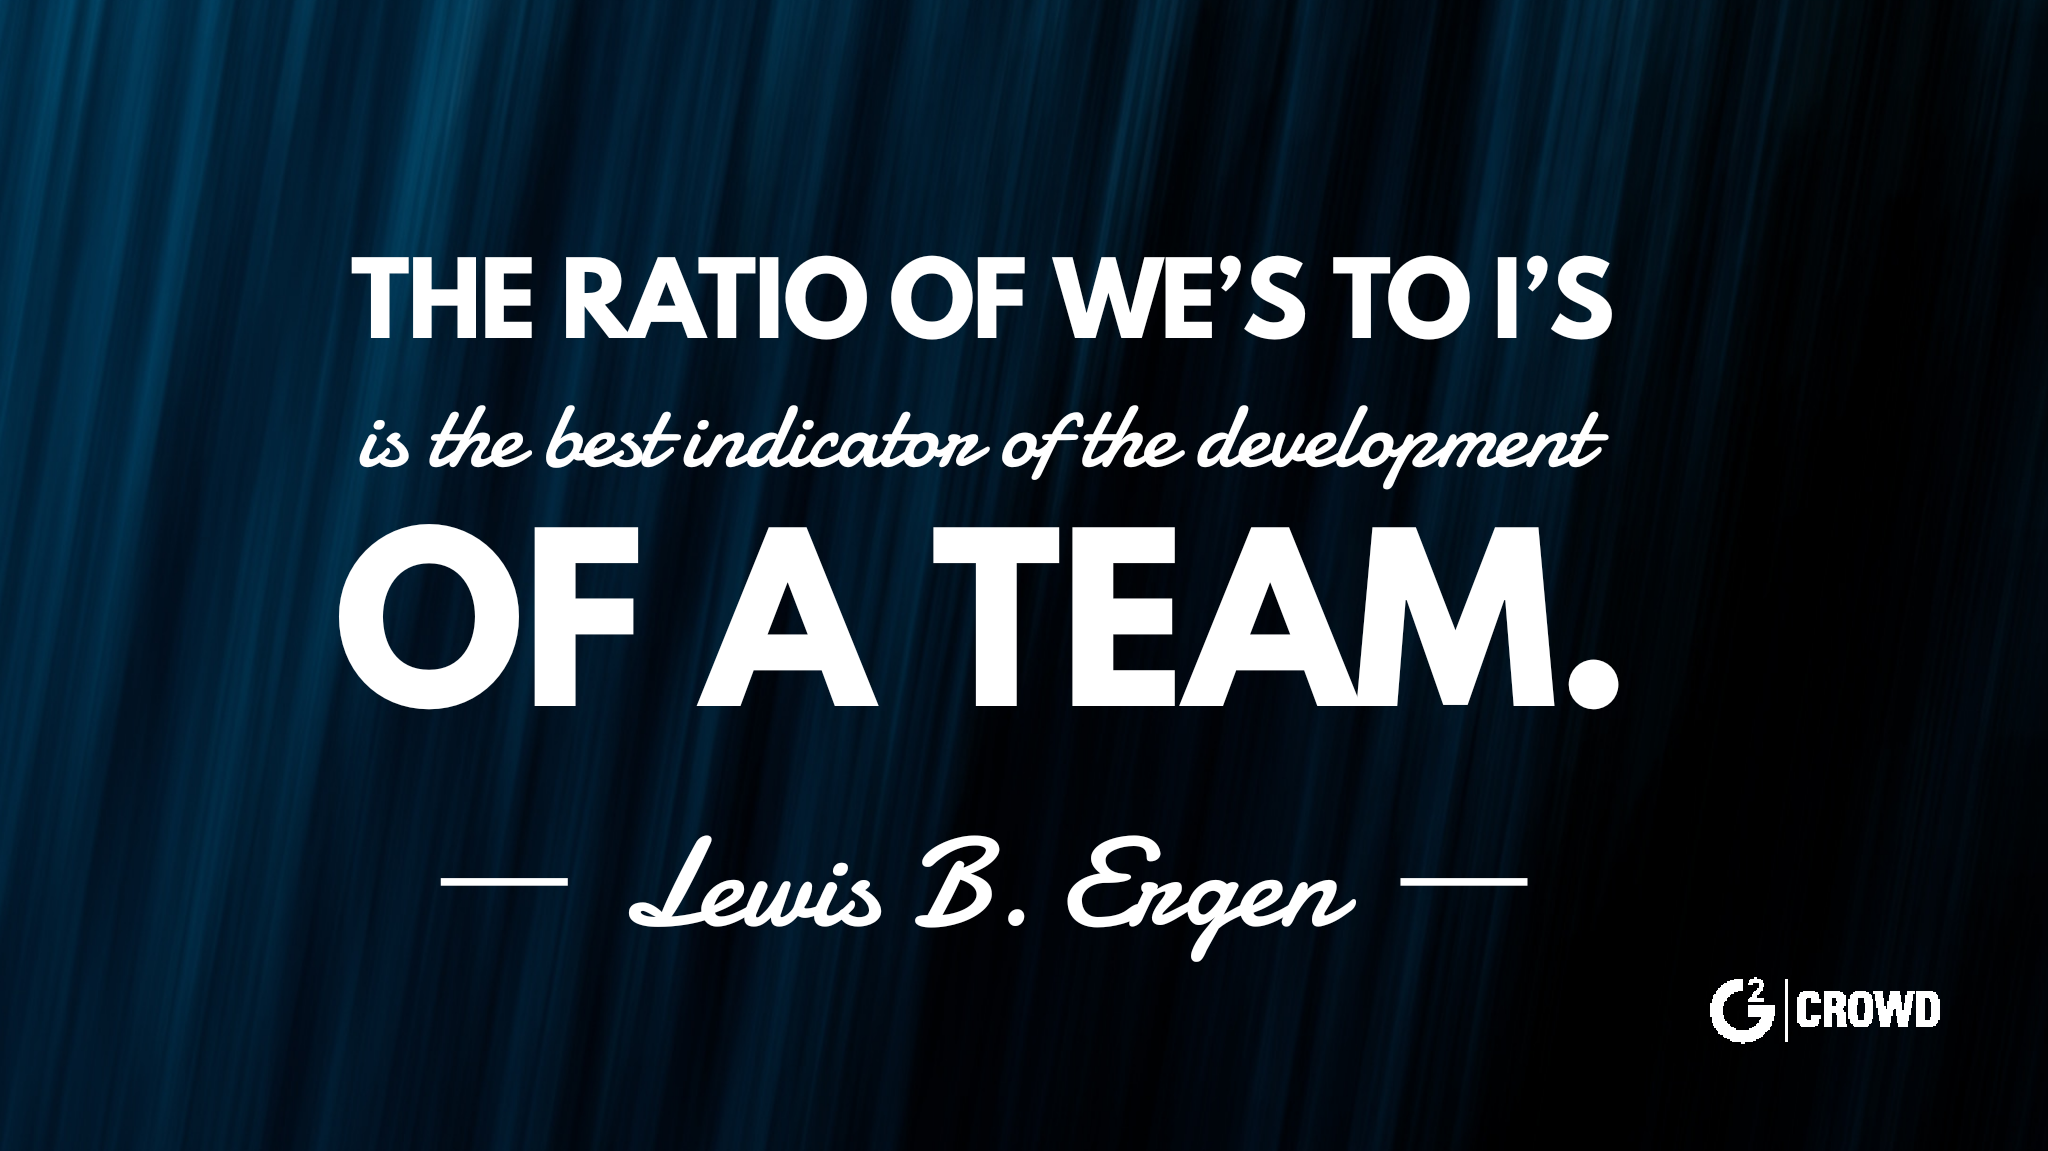 quotes-about-teamwork